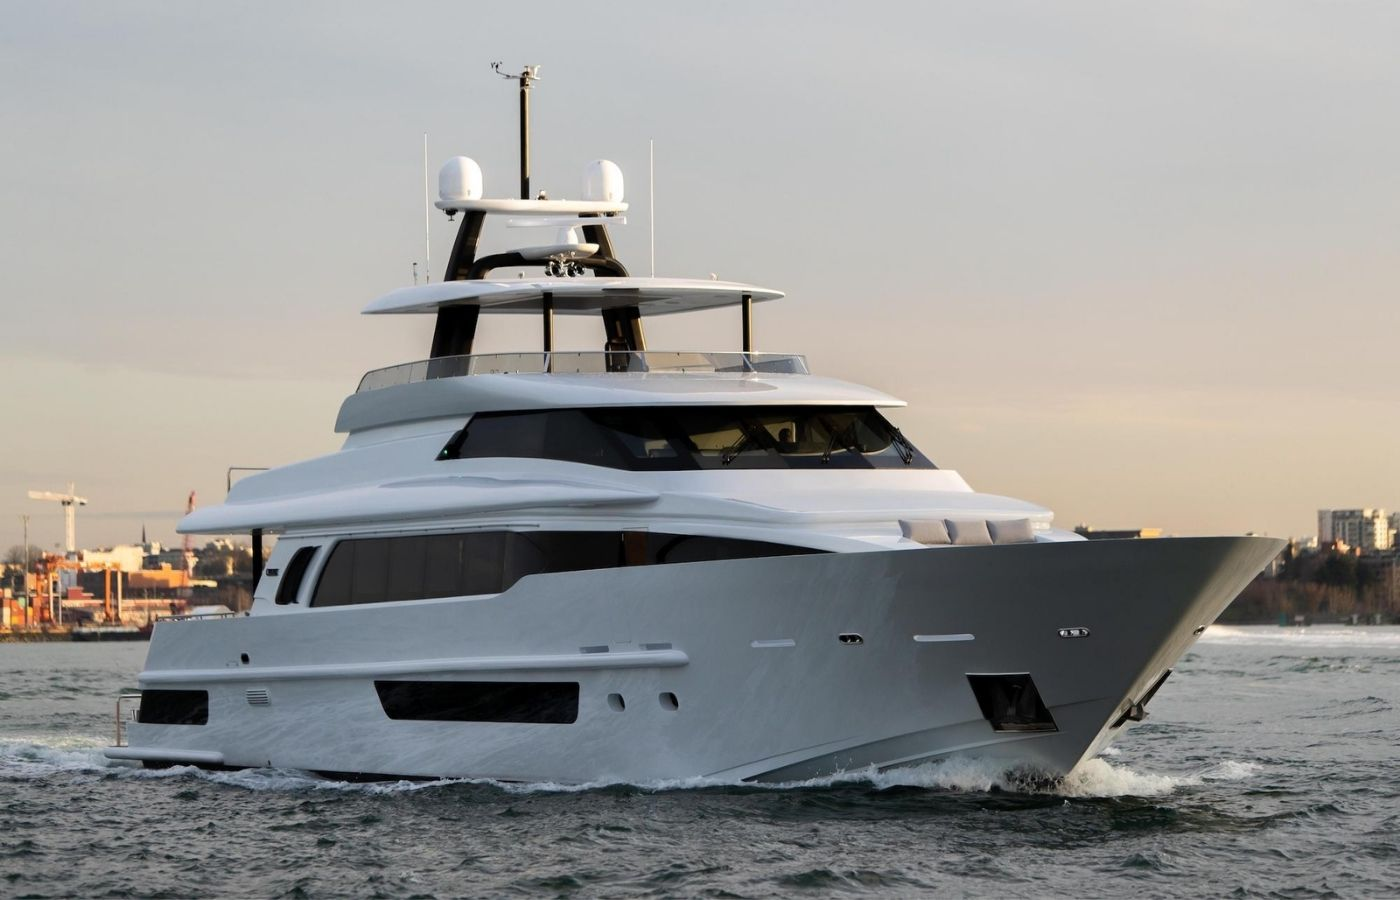 Owner Of A Crescent 117 Accepting Bitcoin, Ethereum + Dogecoin For Yacht Purchase